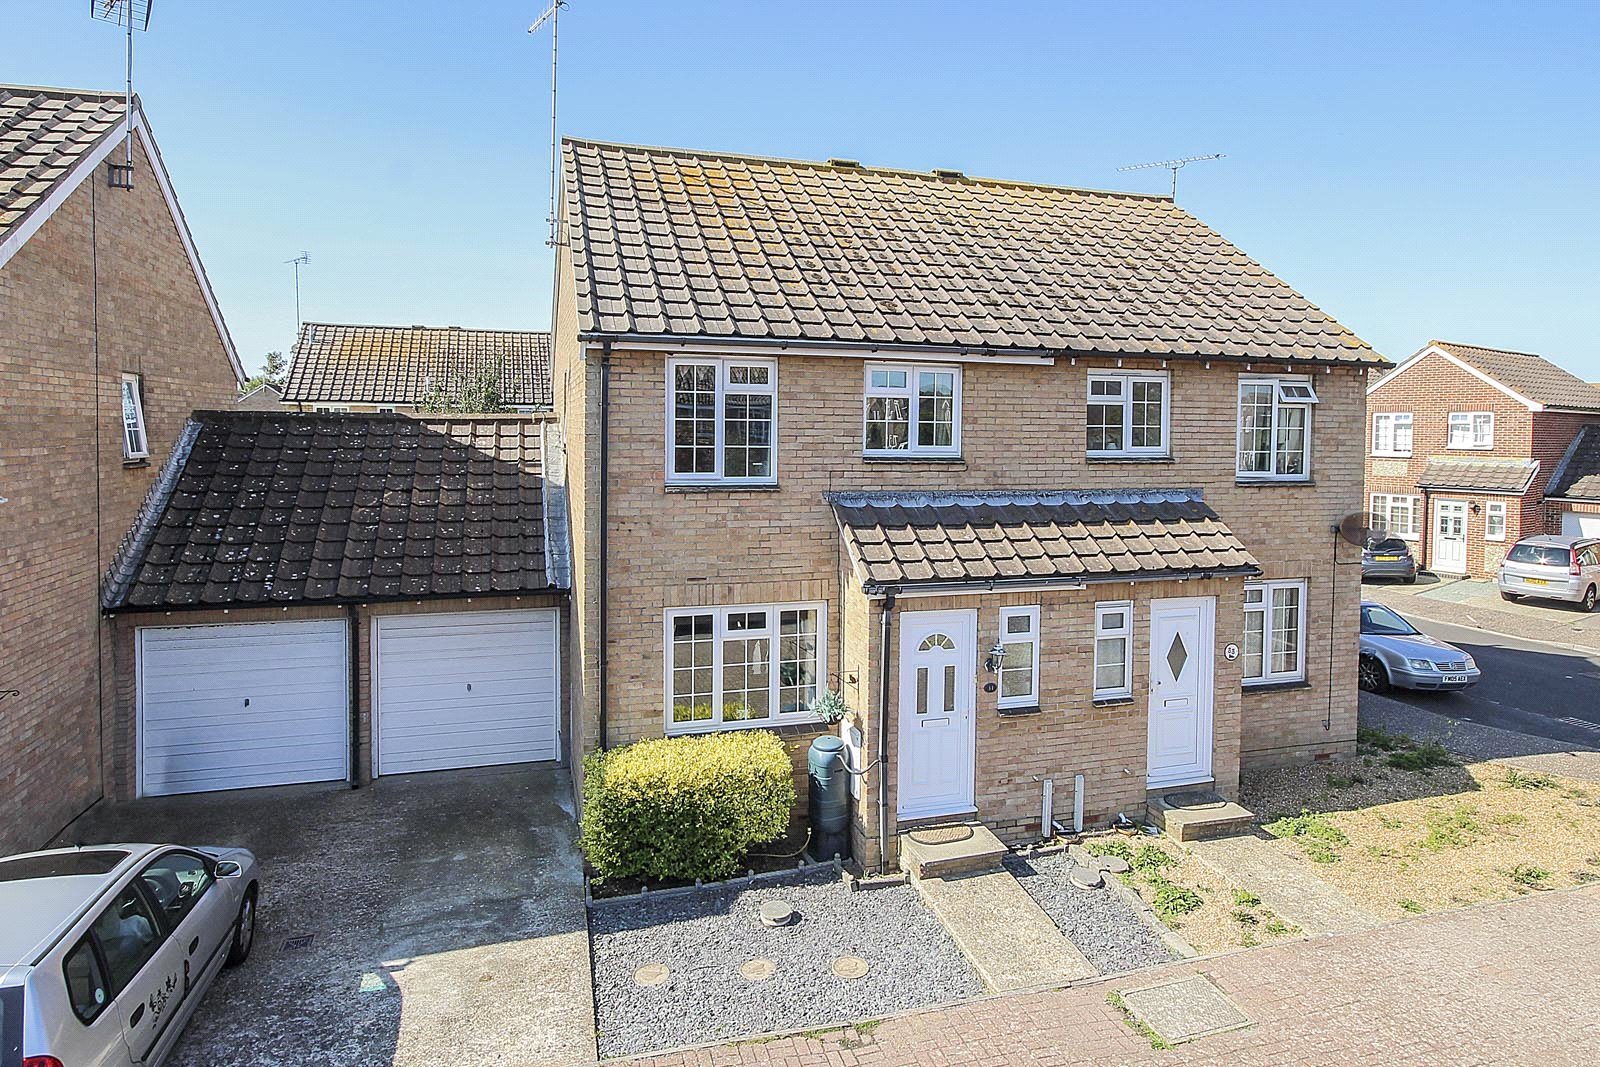 3 bed house for sale in Littlehampton, BN17 6RJ  - Property Image 1